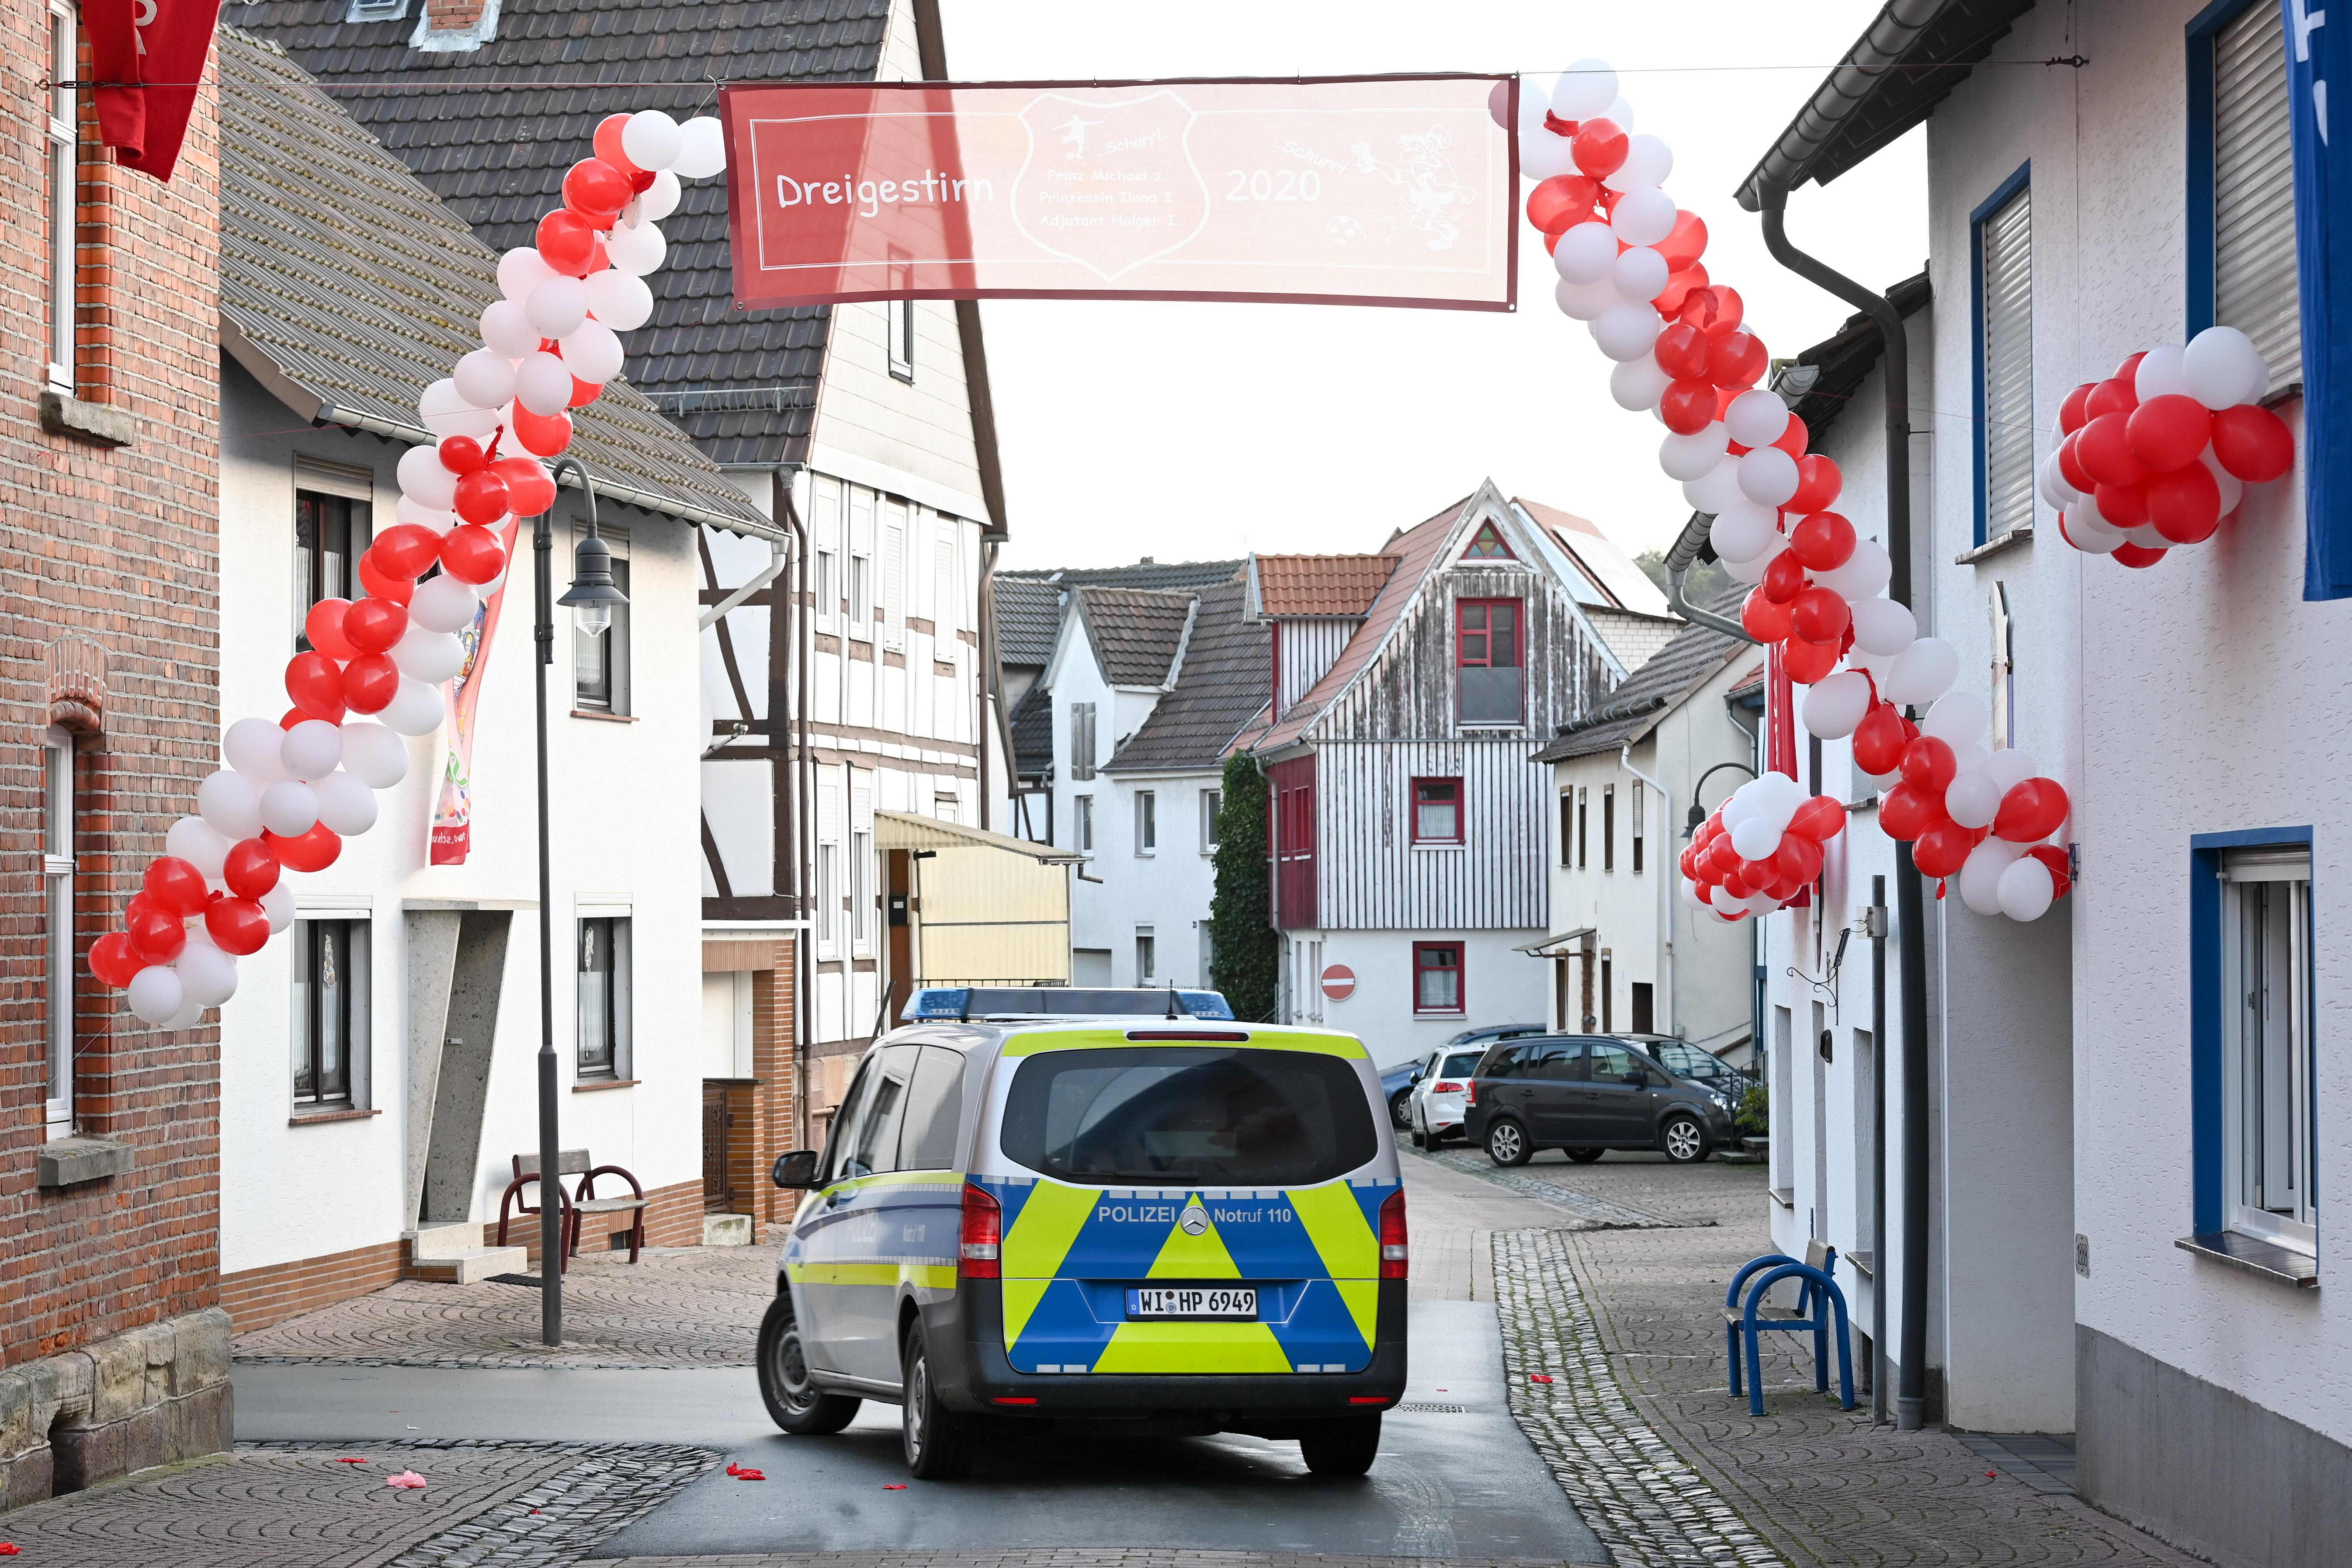 25 February 2020, Hessen, Volkmarsen: A police car passes under a garland of balloons. The day before, a man had driven his car into a carnival parade and injured numerous people, including children. The Frankfurt public prosecutor's office is investigating an attempted homicide. Photo: Uwe Zucchi/dpa (Photo by Uwe Zucchi/picture alliance via Getty Images)